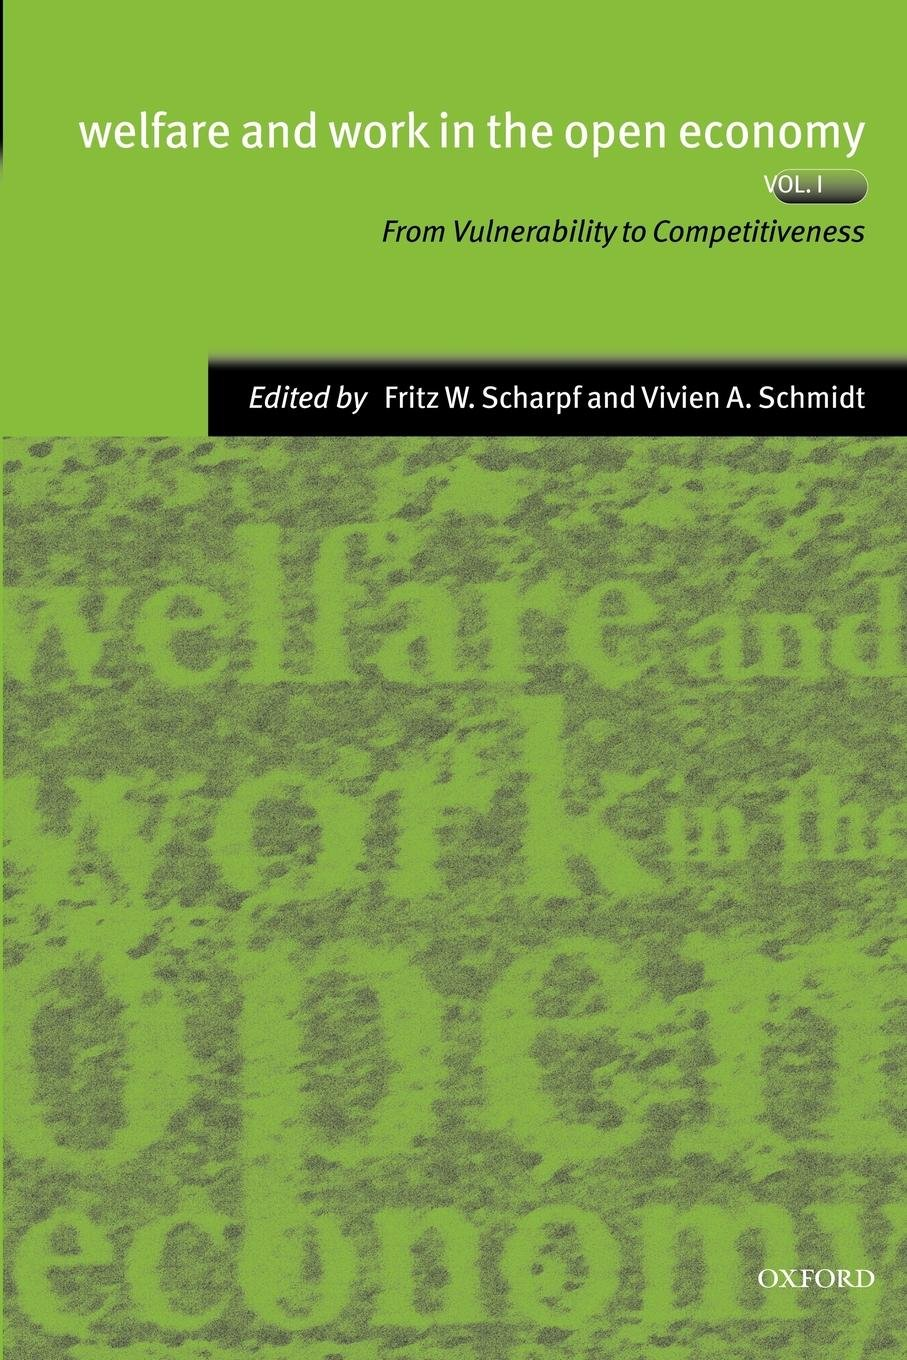 Welfare and Work in the Open Economy: Volume I: From Vulnerability to Competitiveness (Welfare & Work in the Open Economy)